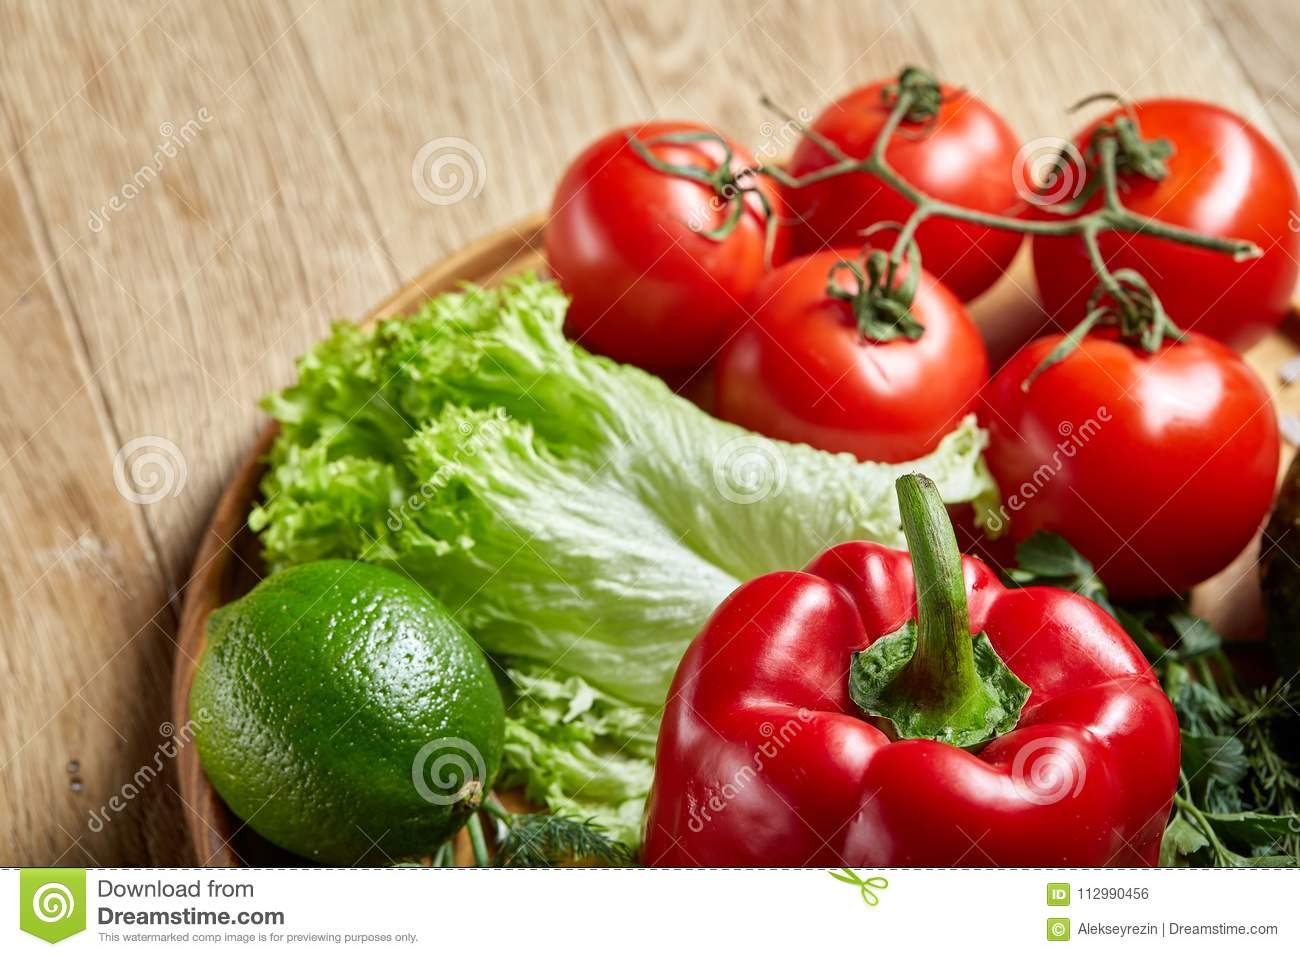 Close-up still life of assorted fresh vegetables and herbs on vintage wooden background, top view, selective focus.